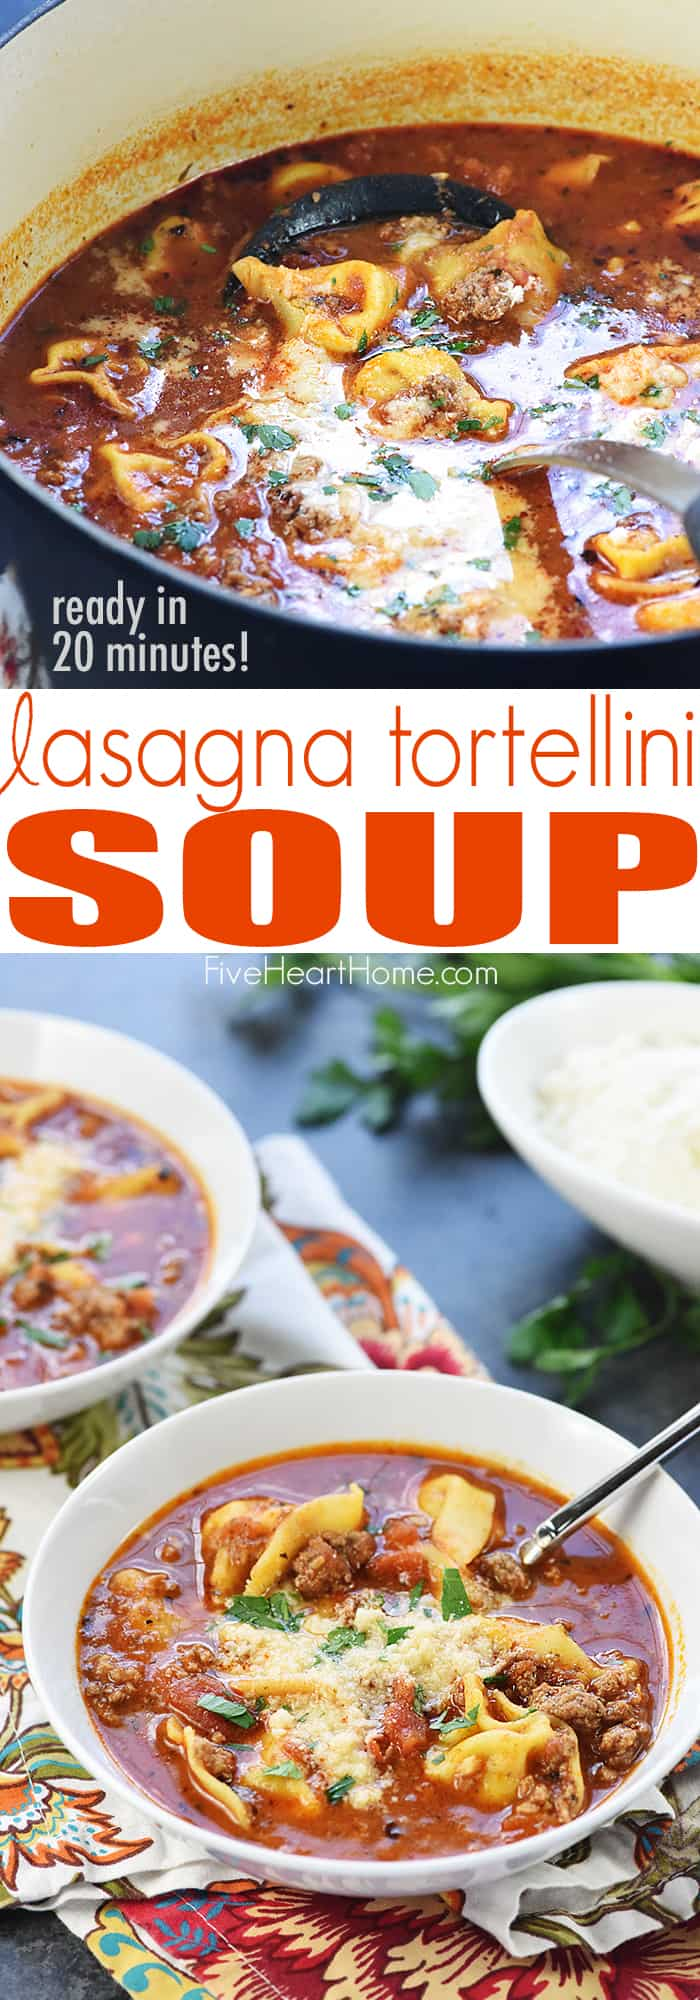 Lasagna Tortellini Soup ~ a flavorful stovetop recipe featuring ground beef, herbs, and Parmesan in a marinara-based broth that can be ready in just 20 minutes! | FiveHeartHome.com